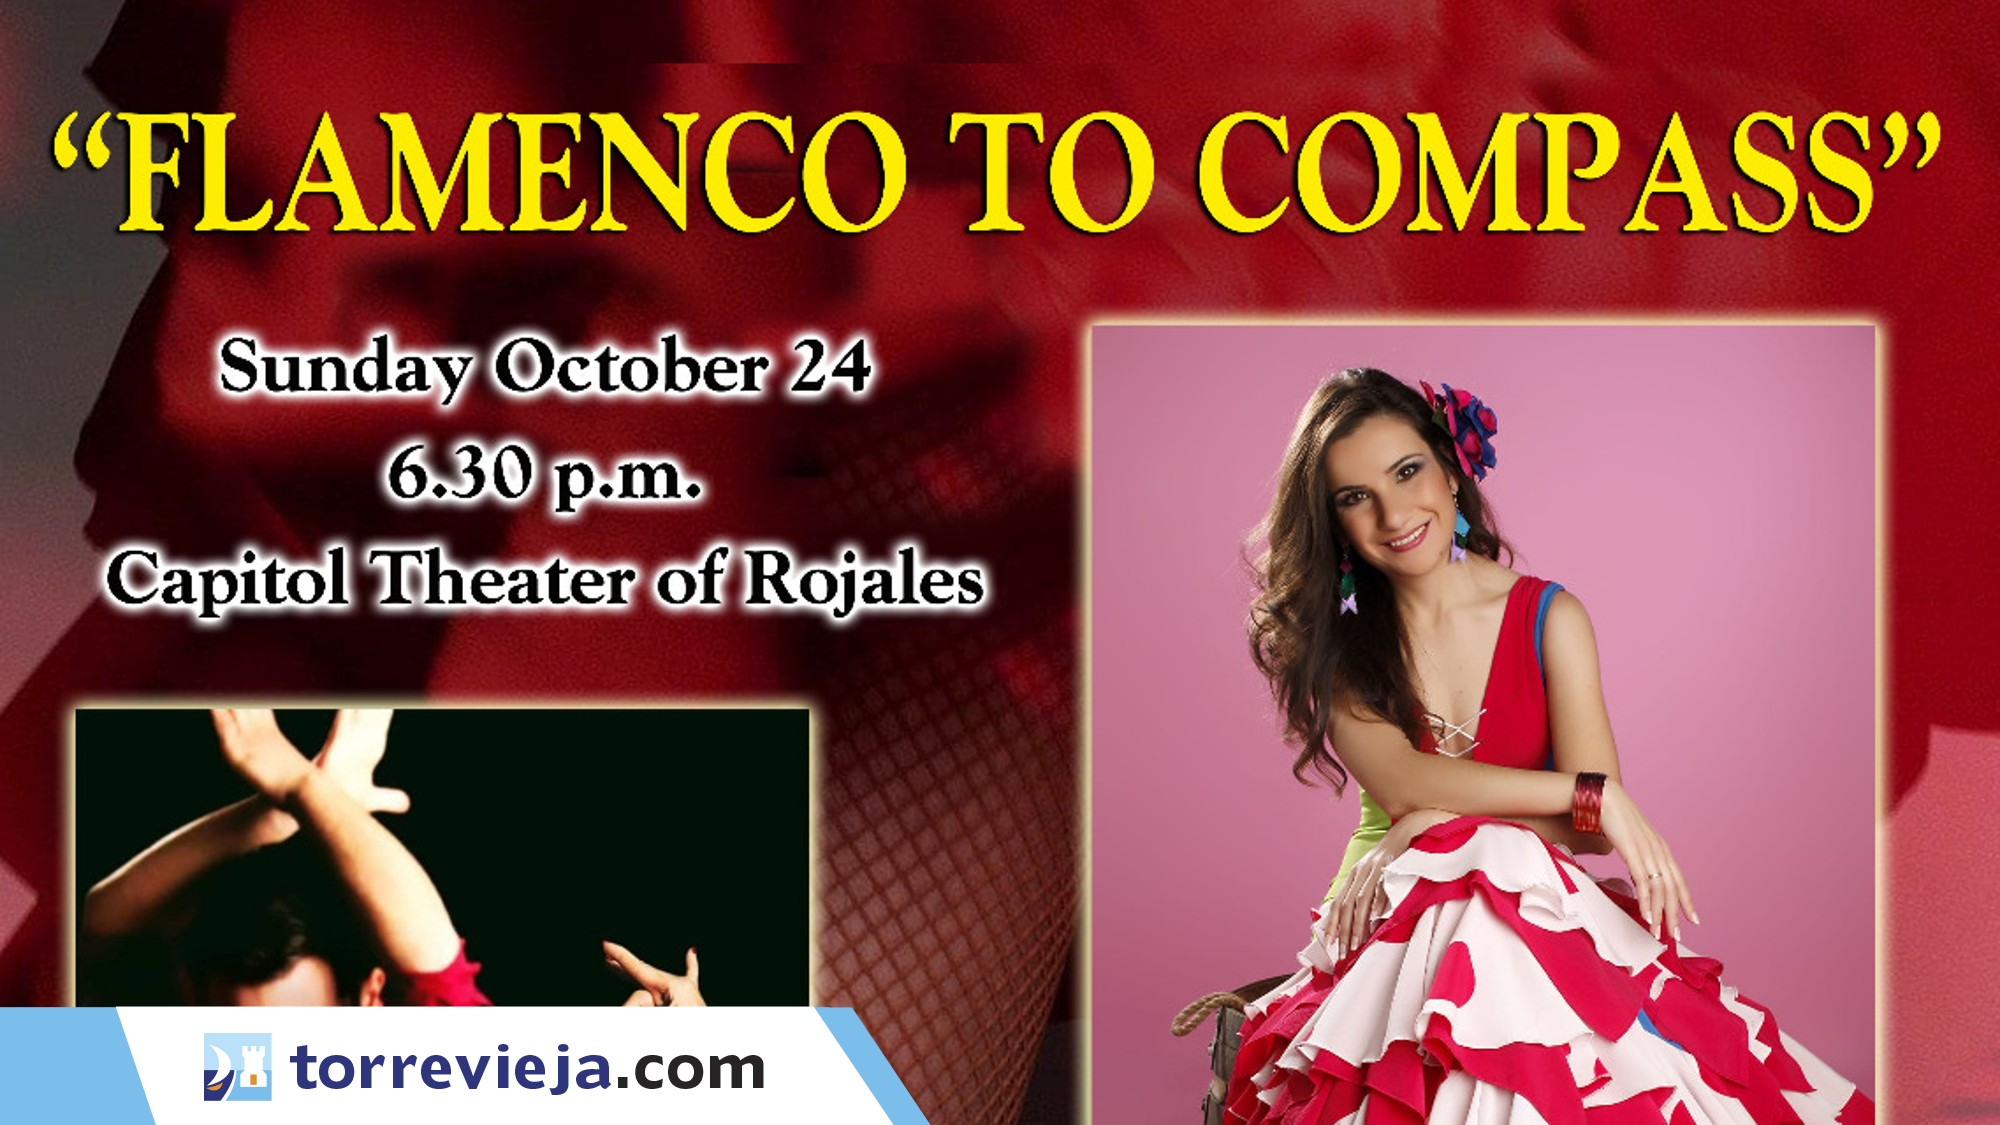 Flamenco to compass in Rojales